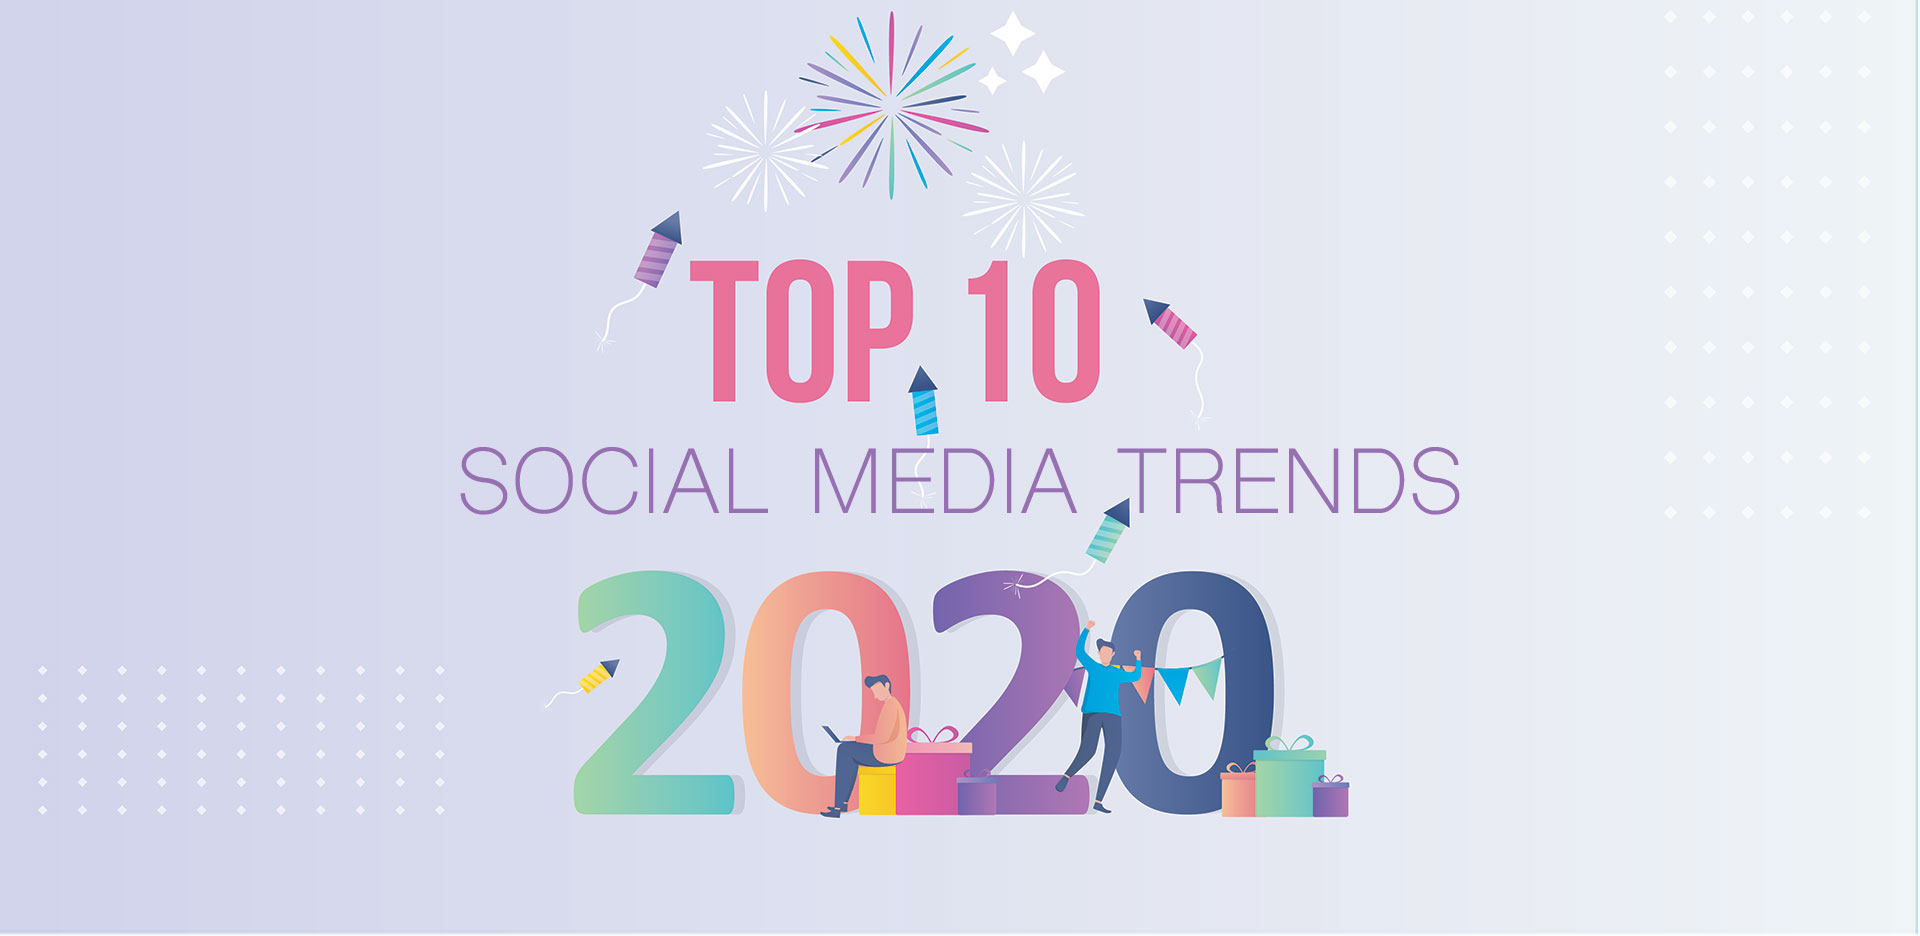 Top 10 Social Media Trends For 2020 And Beyond Mentionlytics Blog